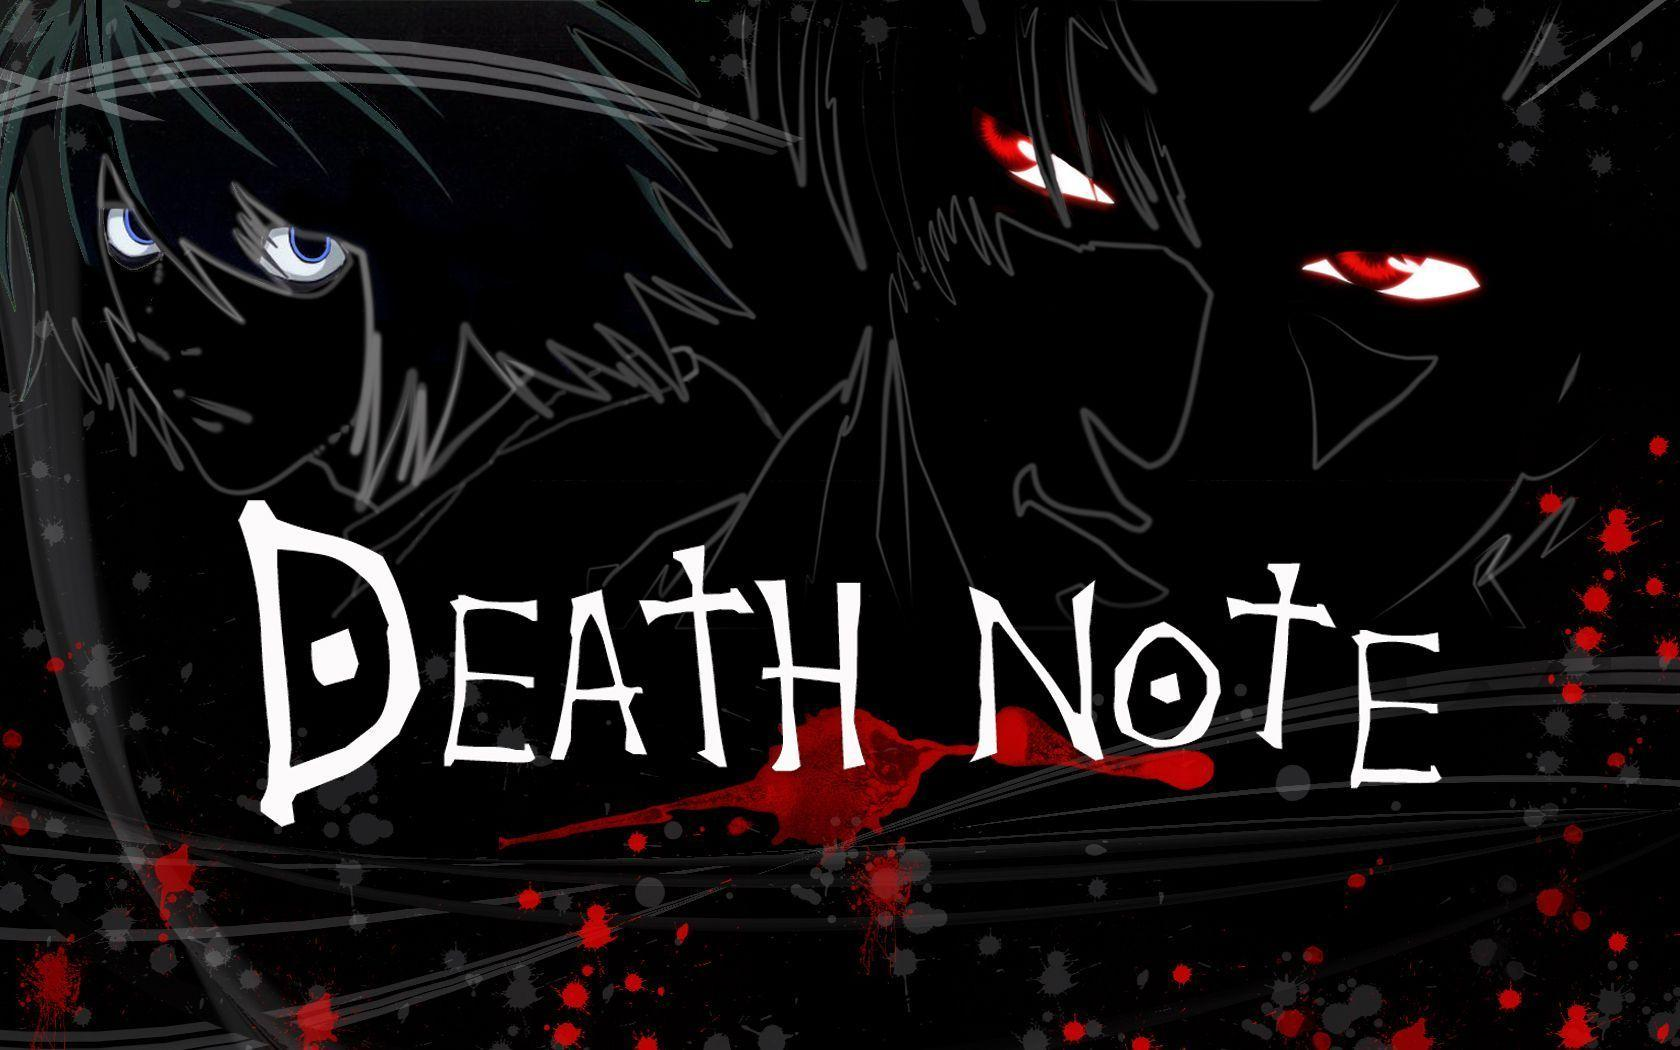 Death Note - Death Note Wallpaper (16487779) - Fanpop